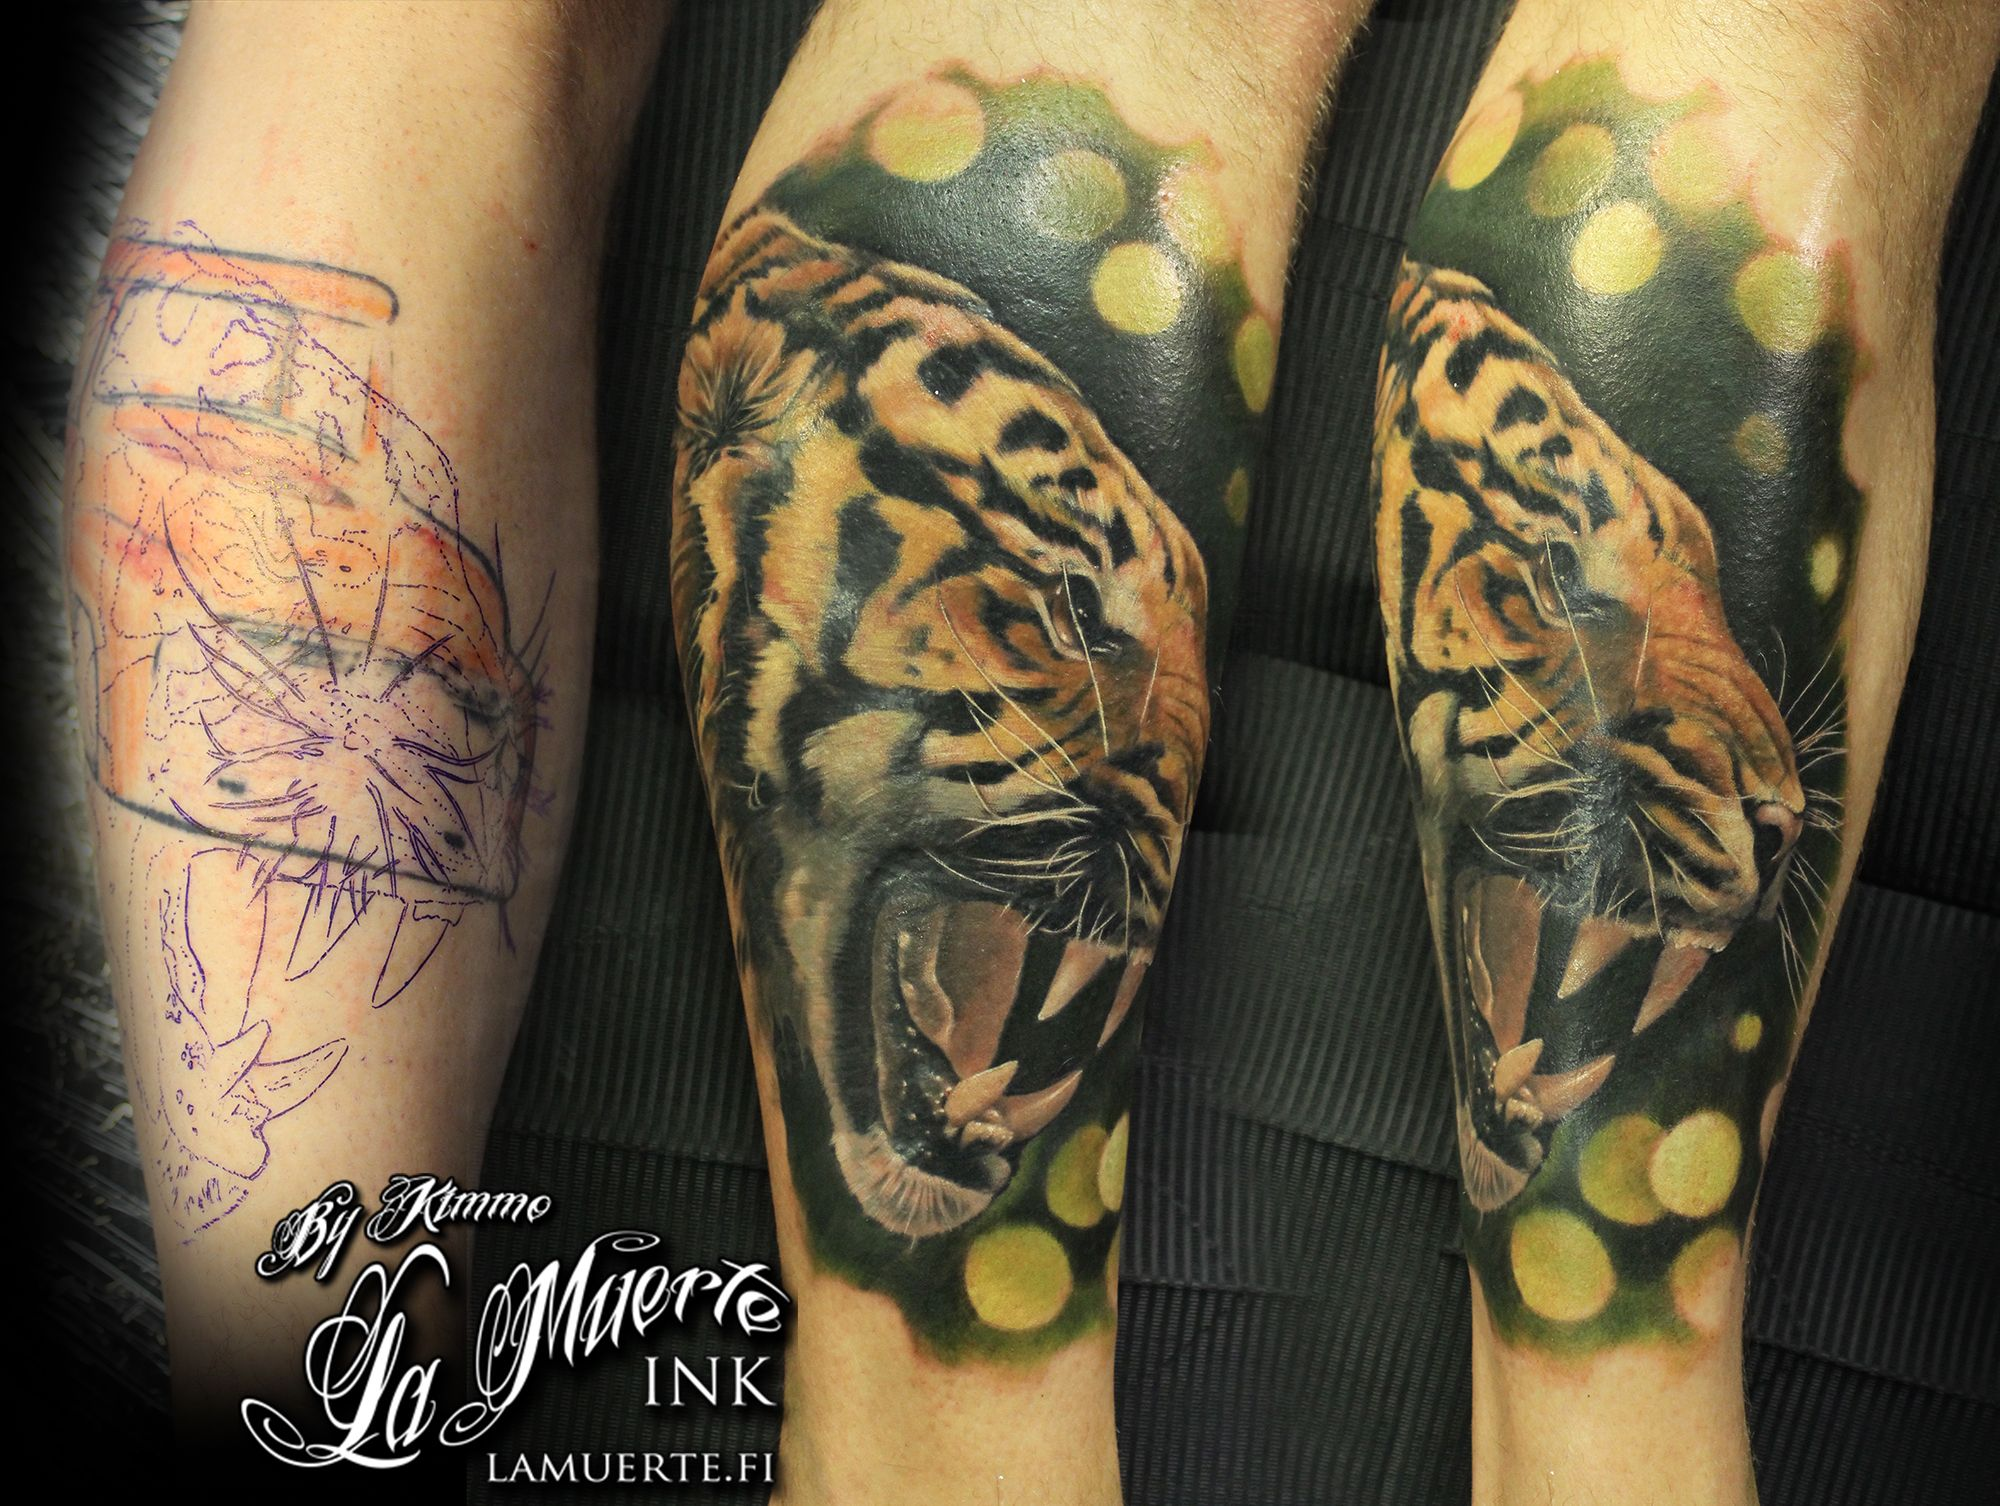 a18175bc47896 Tiger cover-up tattoo by Kimmo Angervaniva @ La Muerte Ink | Tattoos ...